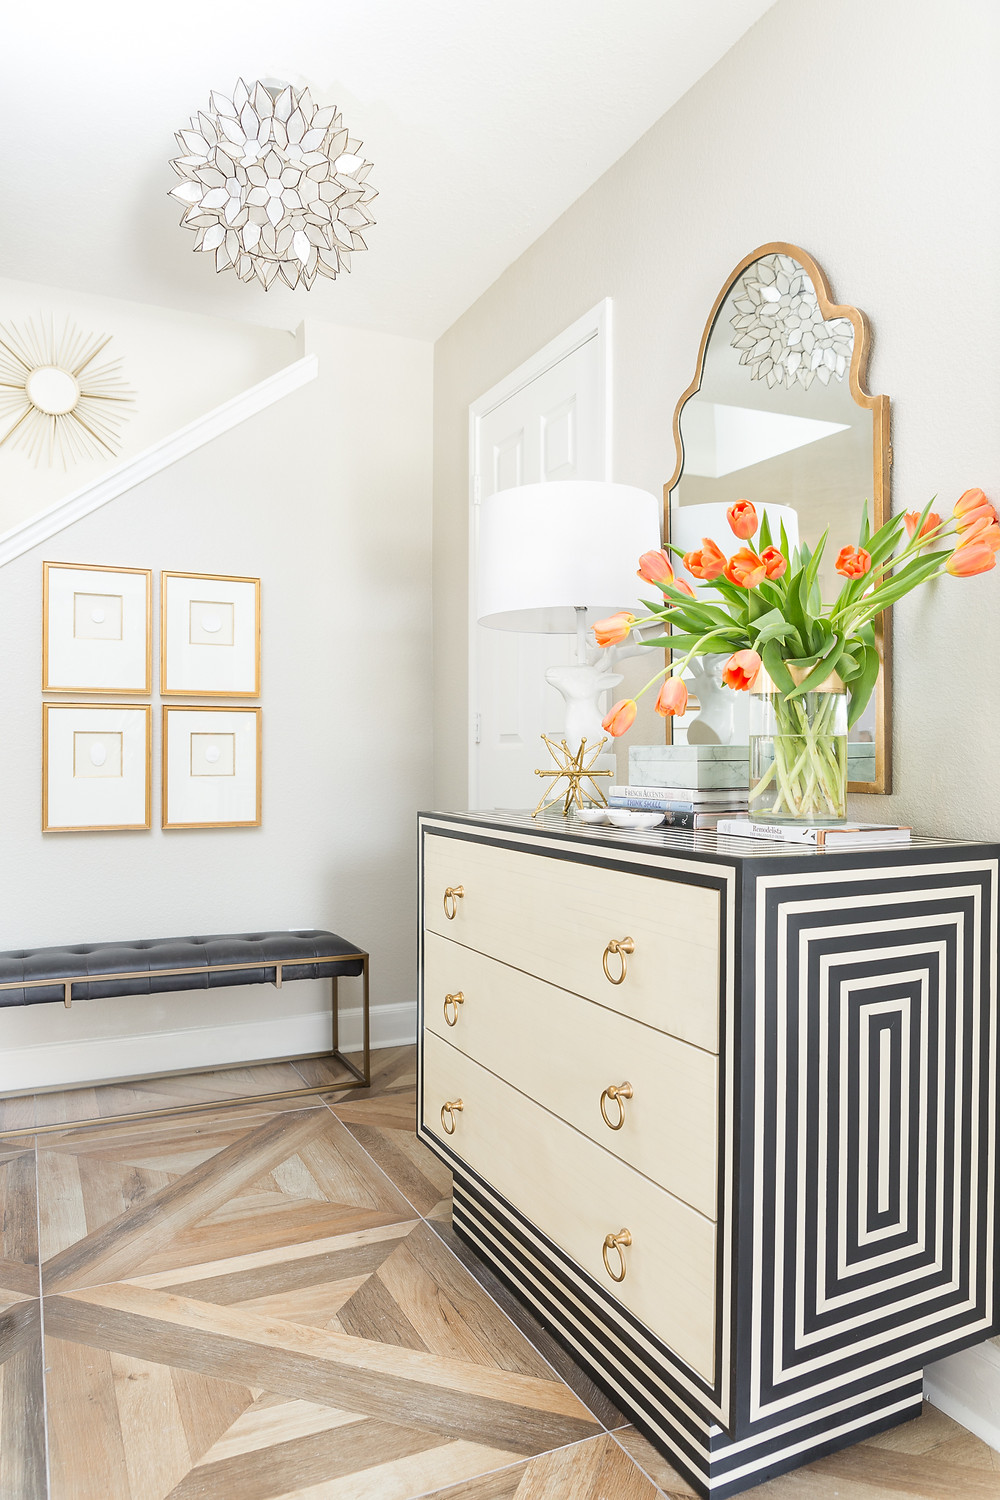 Foyer with black and cream striped chest